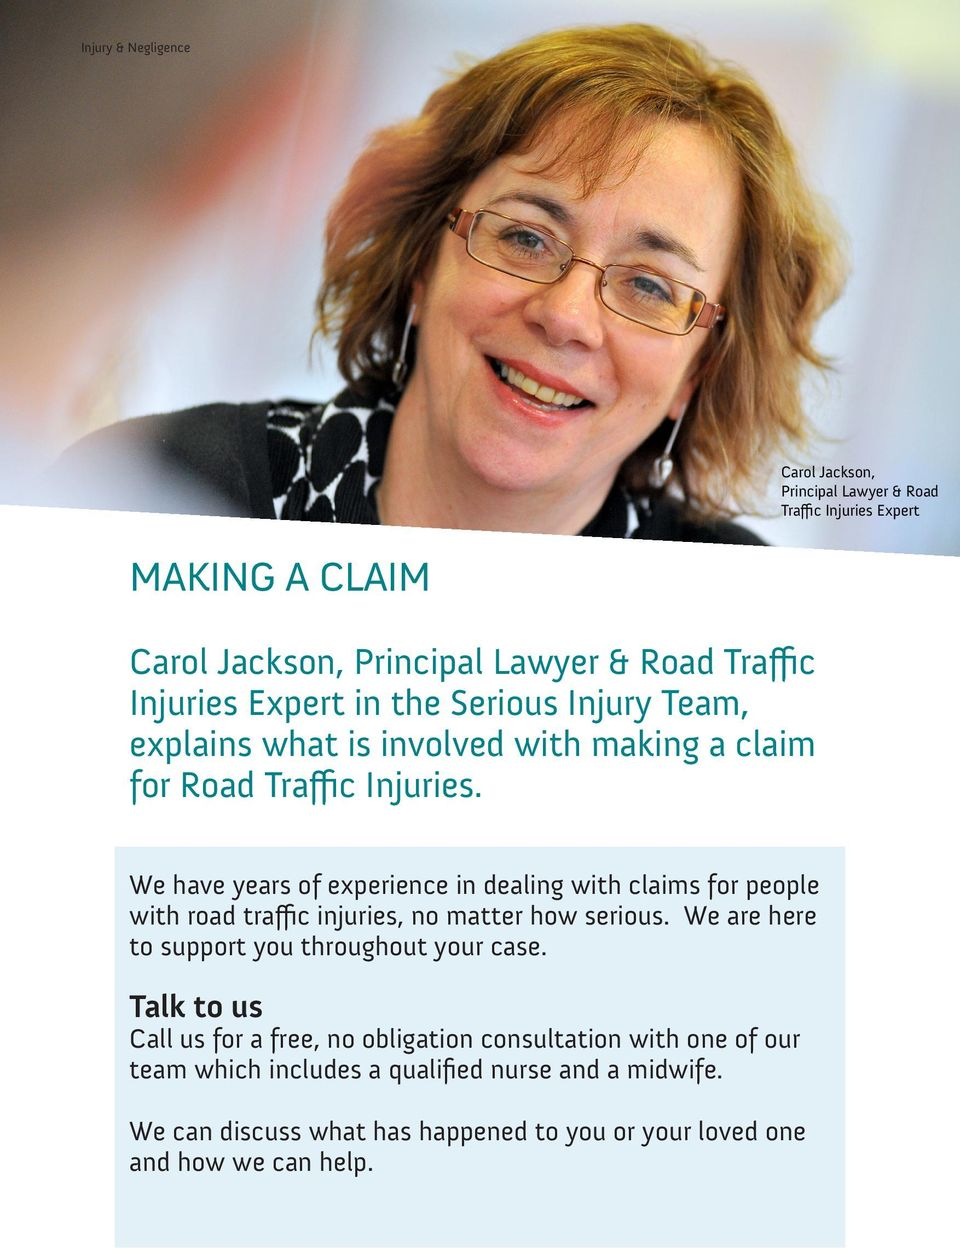 We have years of experience in dealing with claims for people with road traffic injuries, no matter how serious.